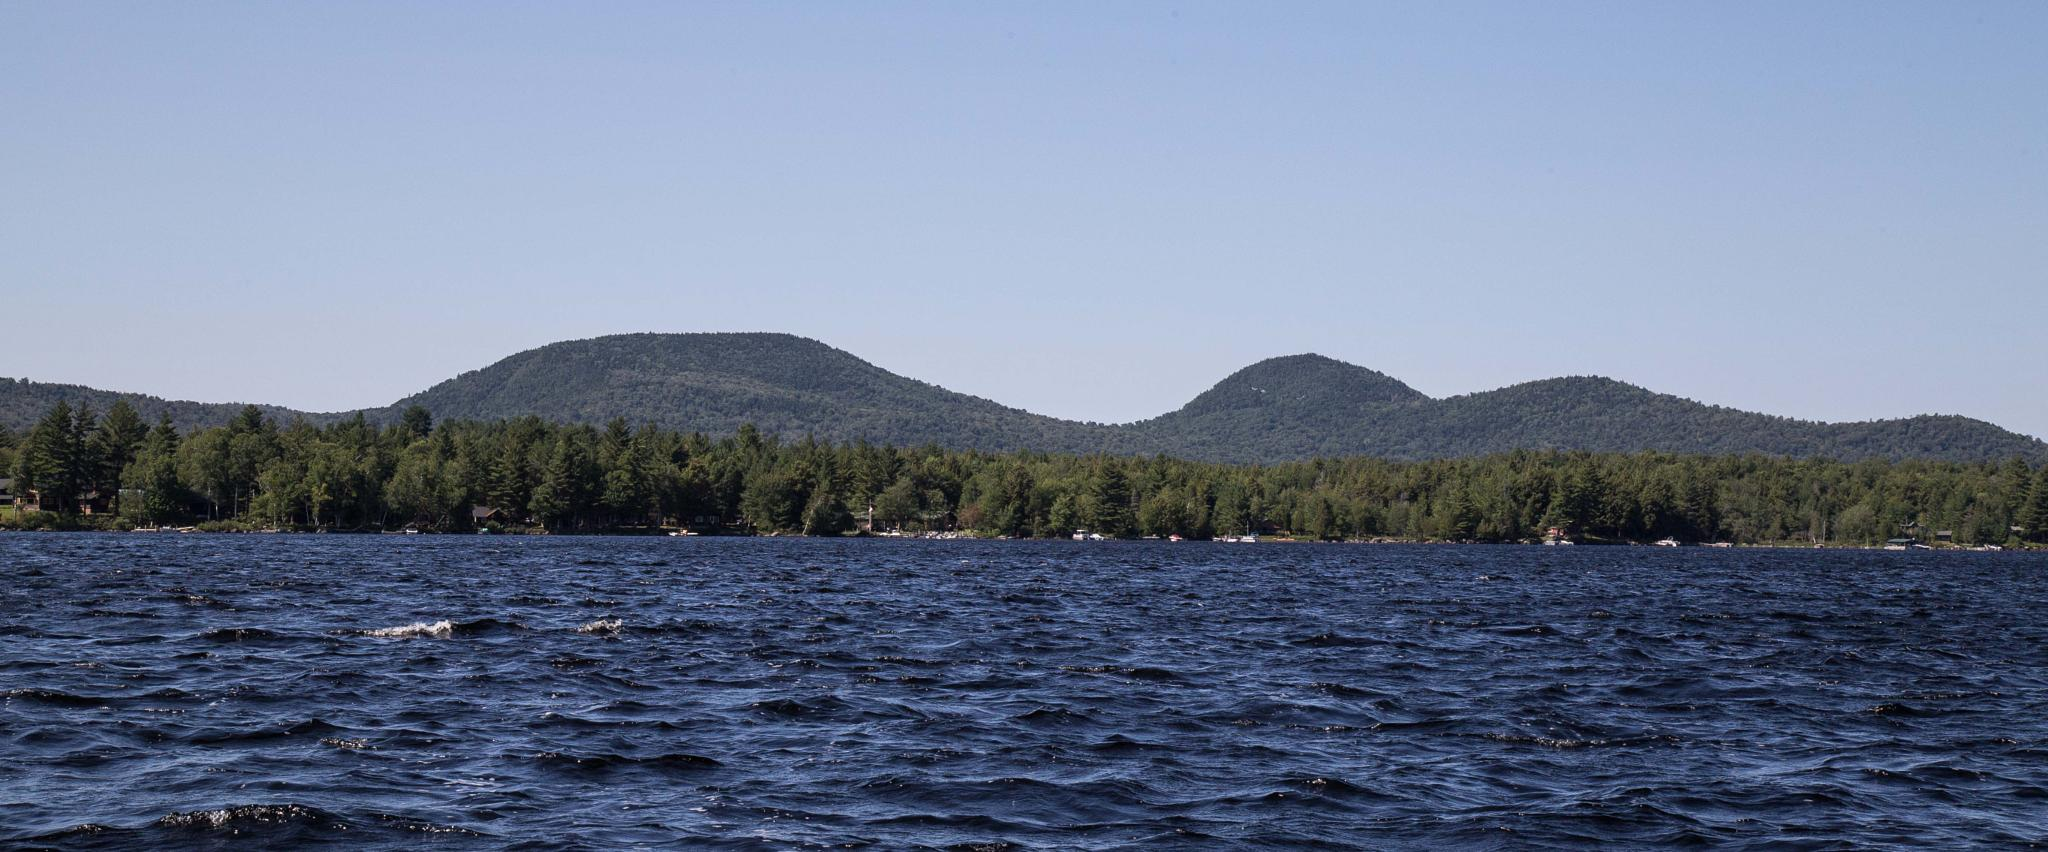 Mountains overlooking Racquette Lake by Rachel Maher